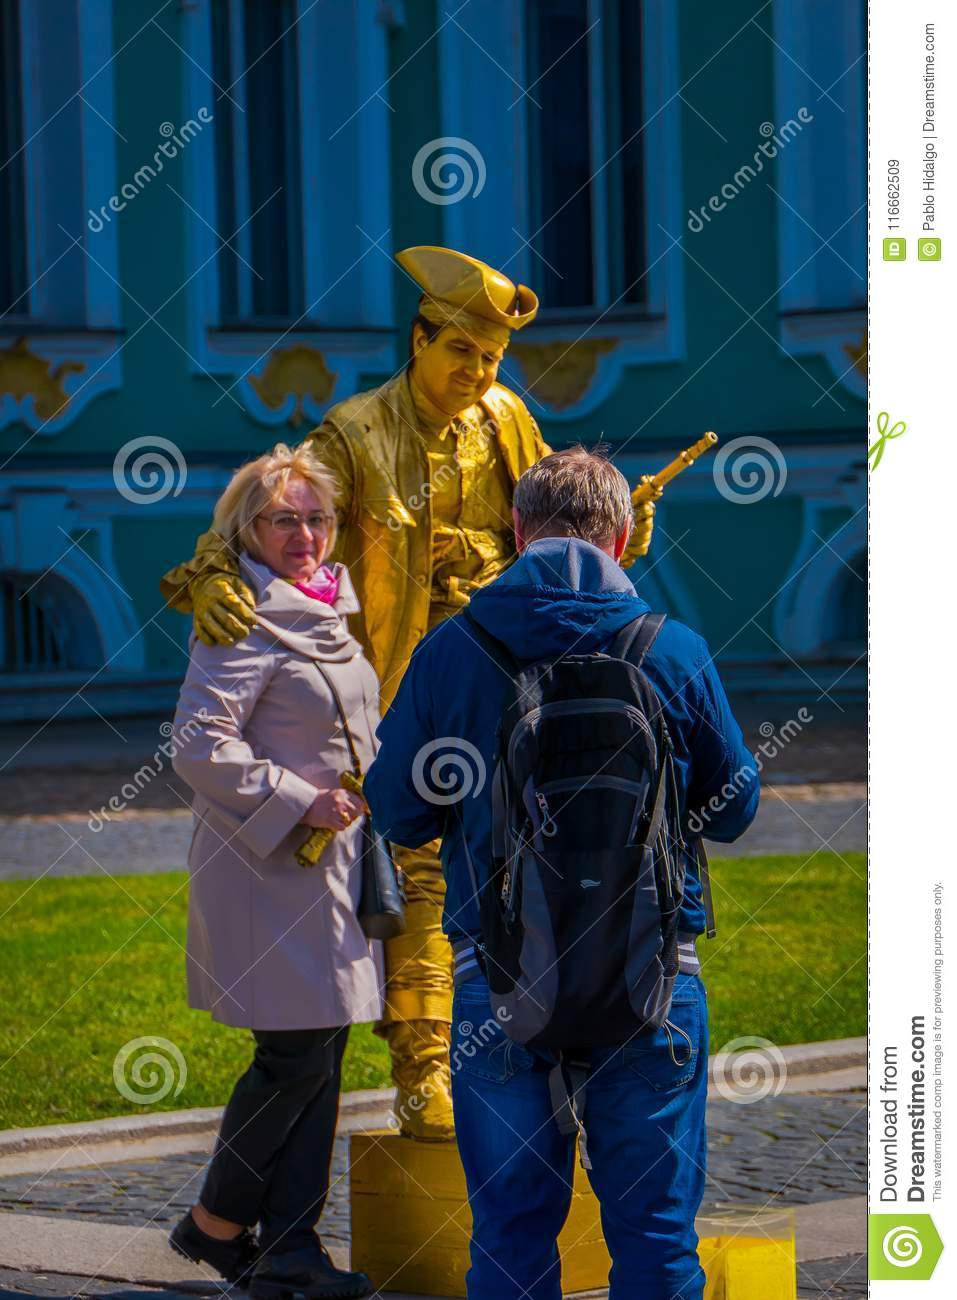 ST. PETERSBURG, RUSSIA, 01 MAY 2018: Unidentified couple close to golden paint mime artist or living golden statue